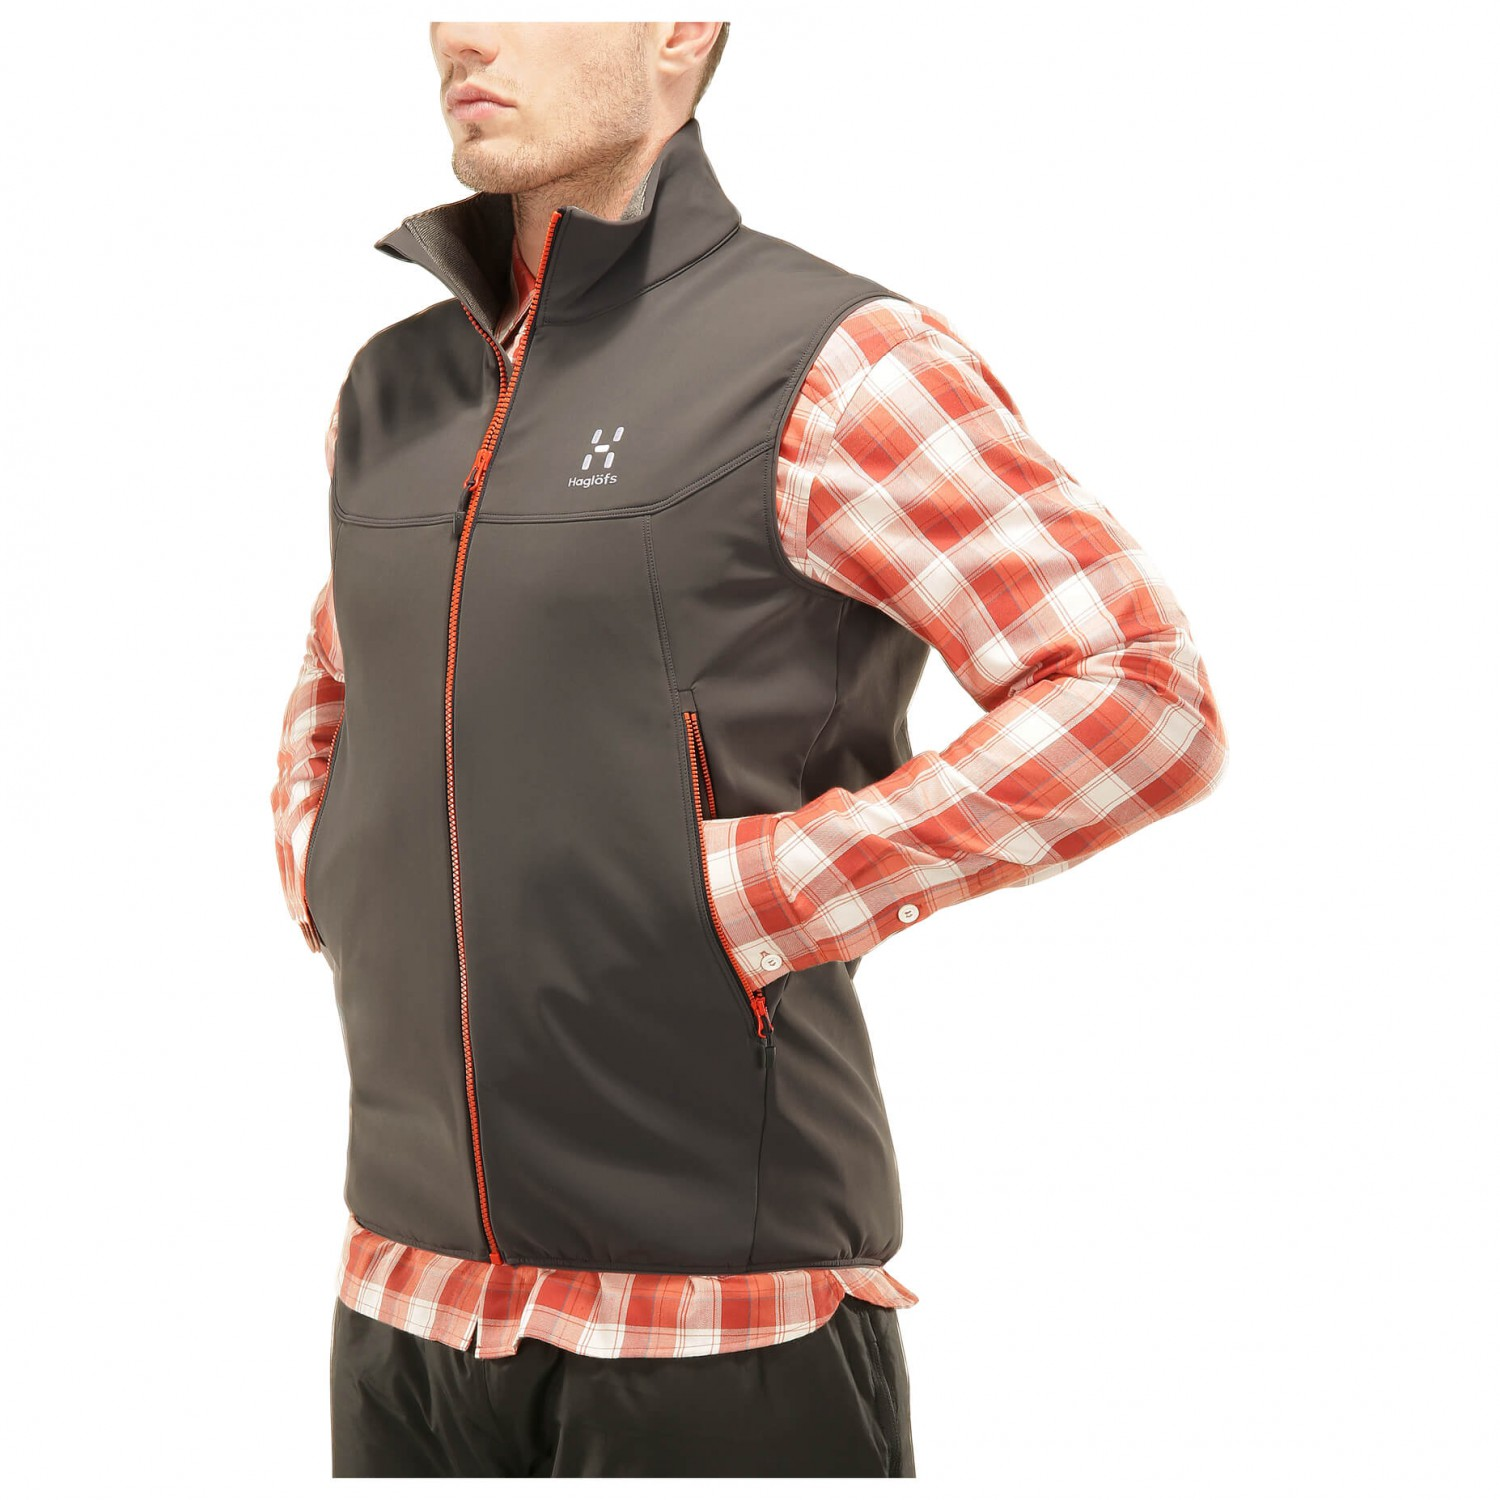 Haglöfs Gecko Vest - Softshell Vest Men's | Buy online | Alpinetrek.co.uk